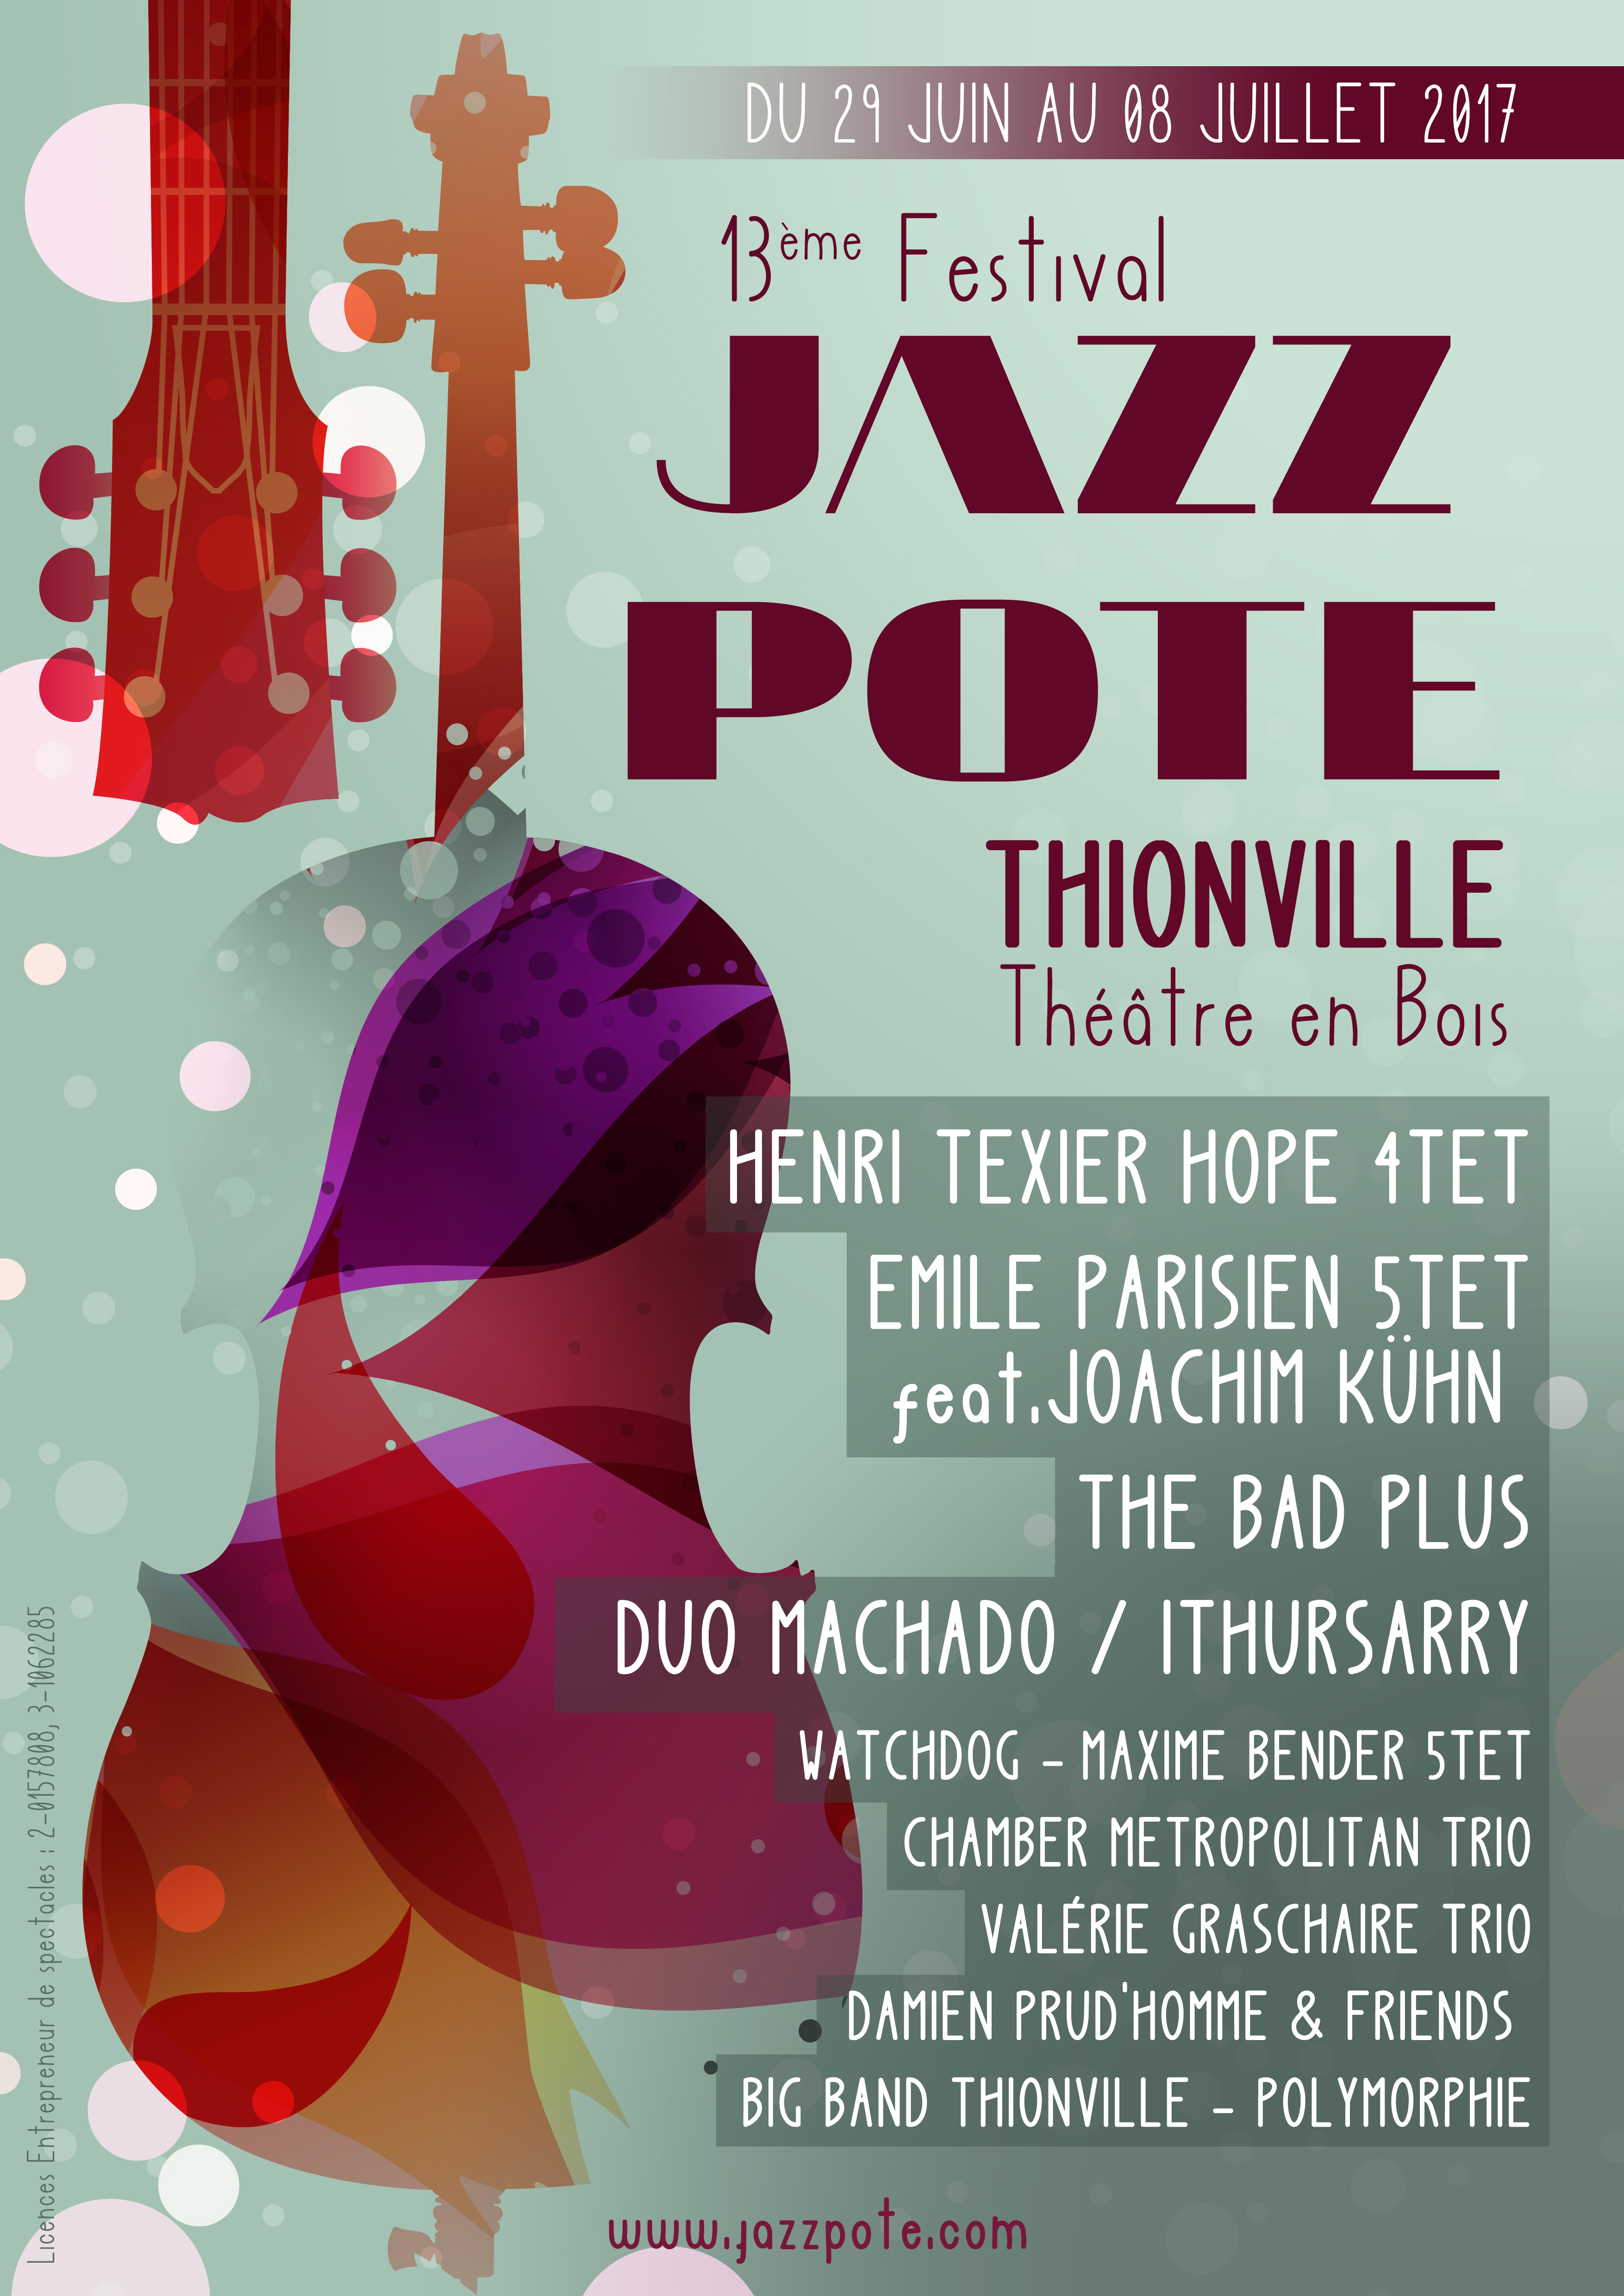 Jazzpote 2017